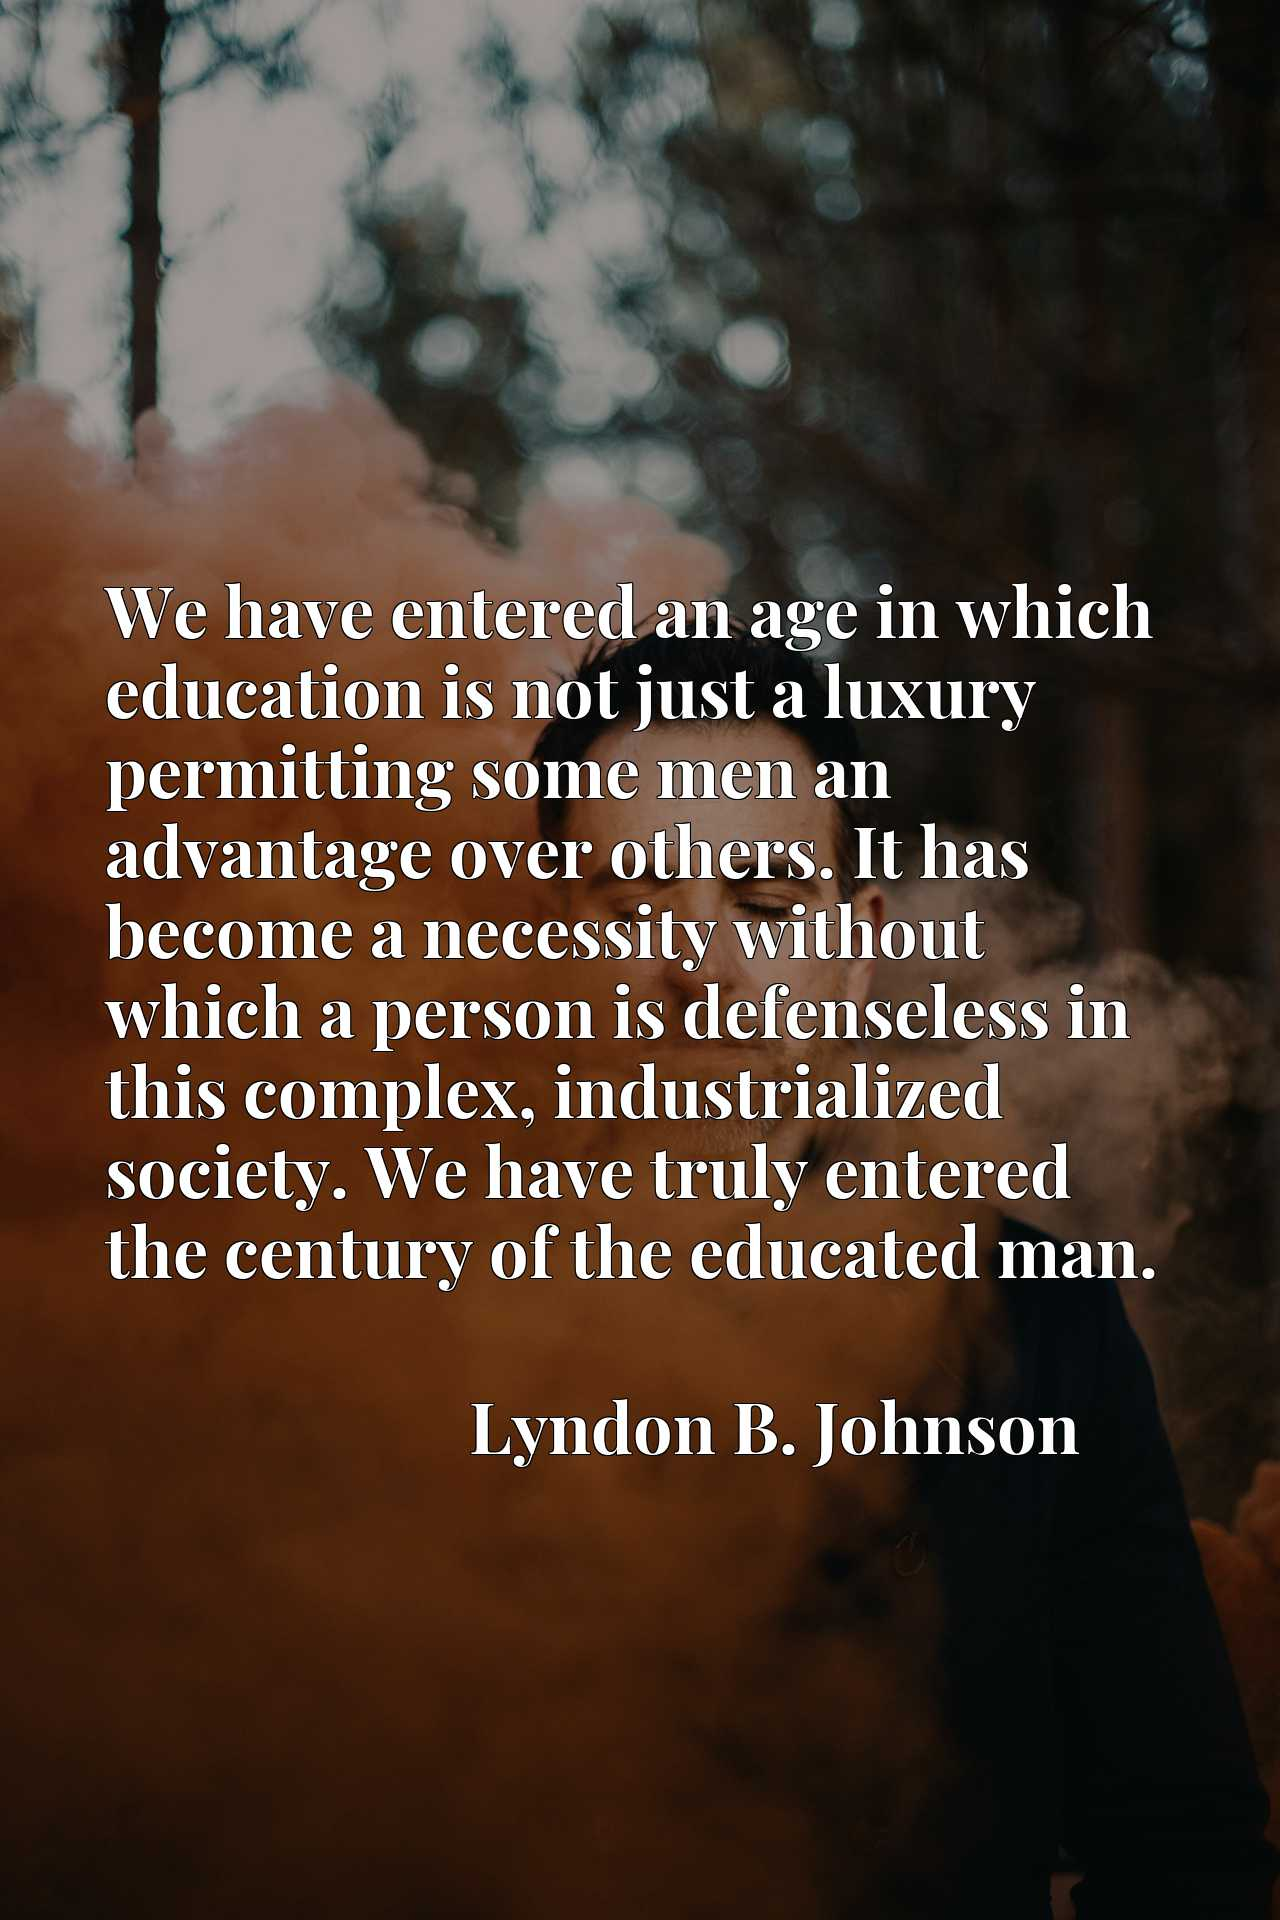 We have entered an age in which education is not just a luxury permitting some men an advantage over others. It has become a necessity without which a person is defenseless in this complex, industrialized society. We have truly entered the century of the educated man.